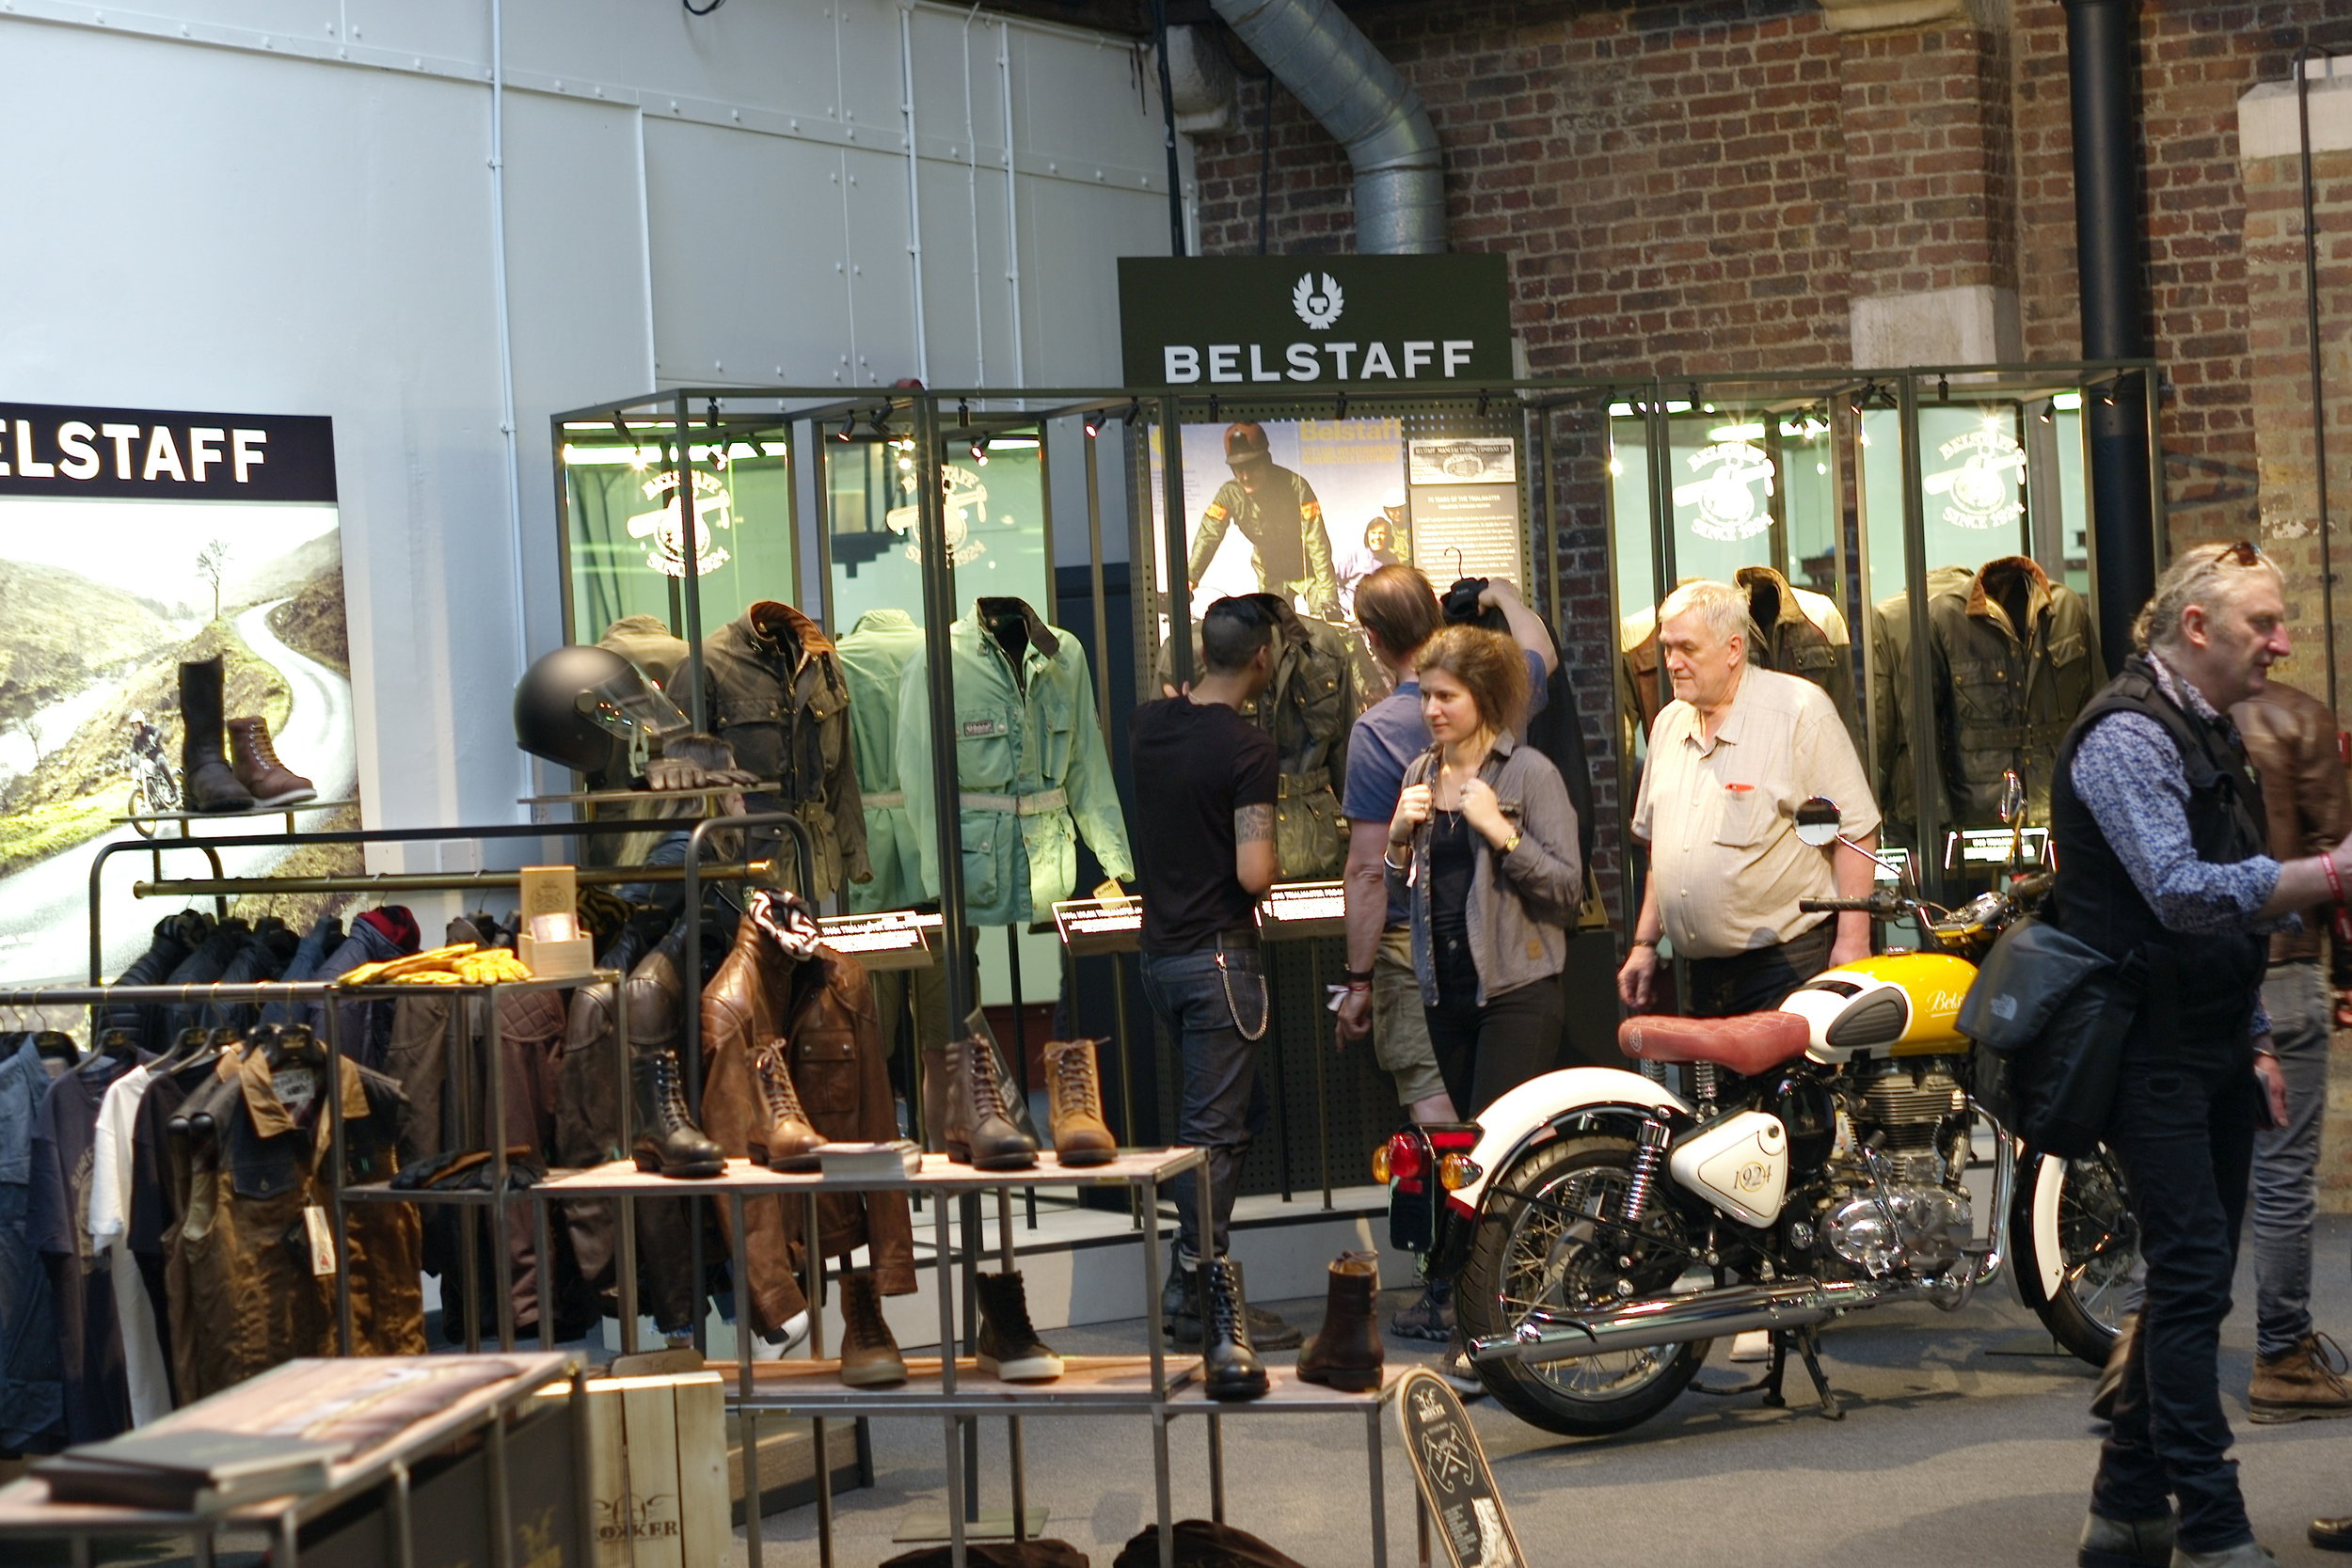 Casual snob - Bikeshed London 2018 Belstaff.JPG